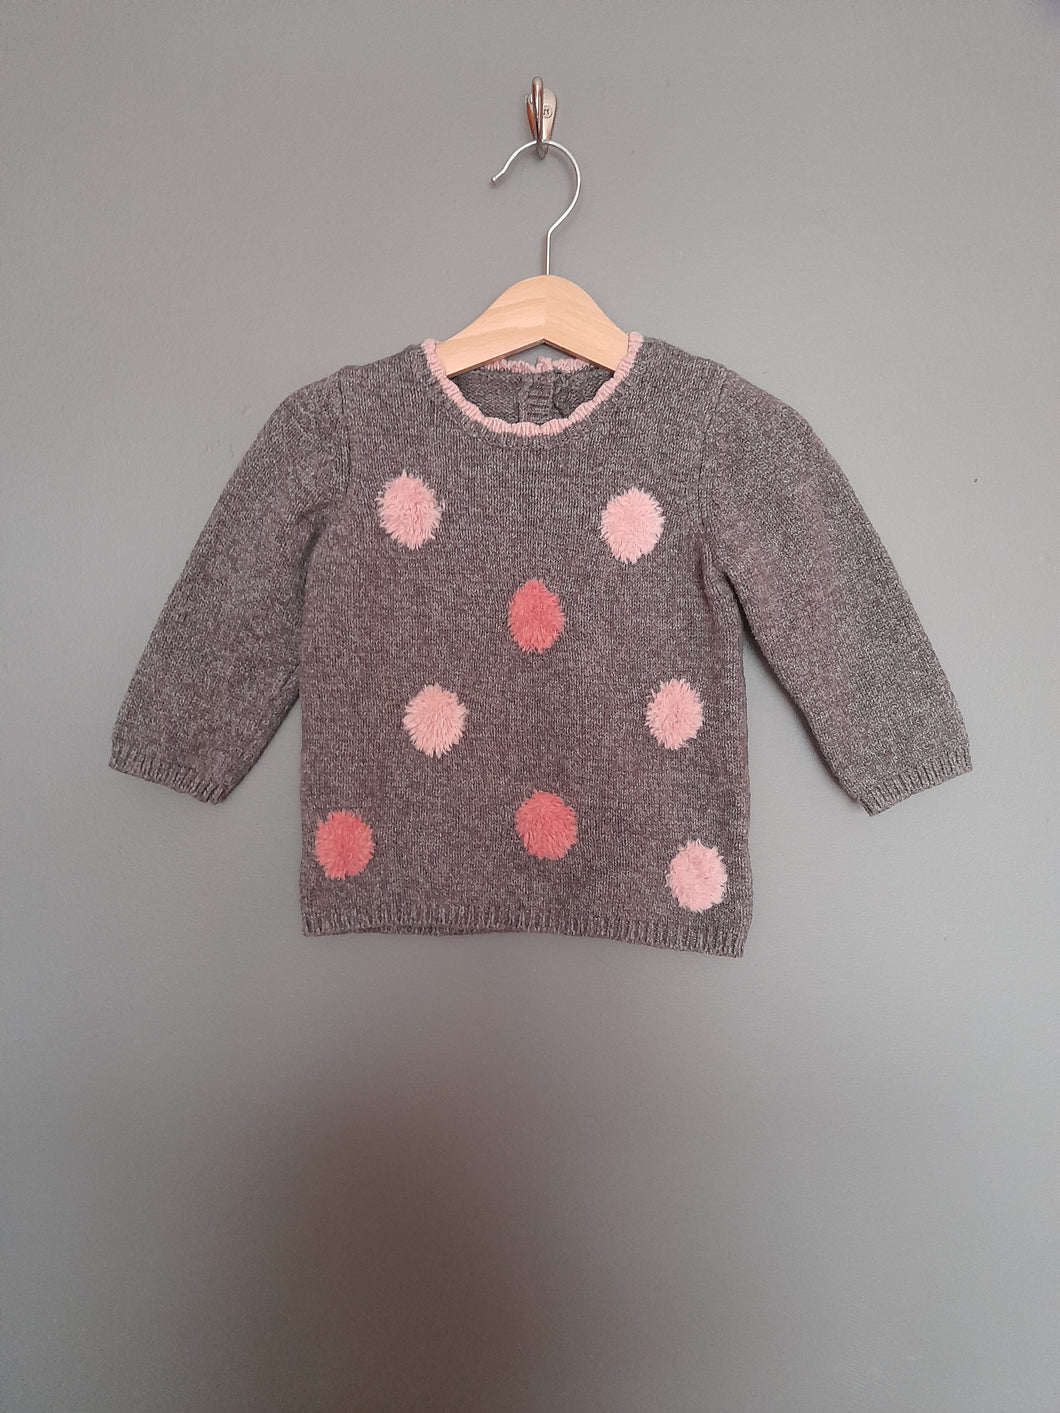 9-12 months Grey & Pink Jumper - George